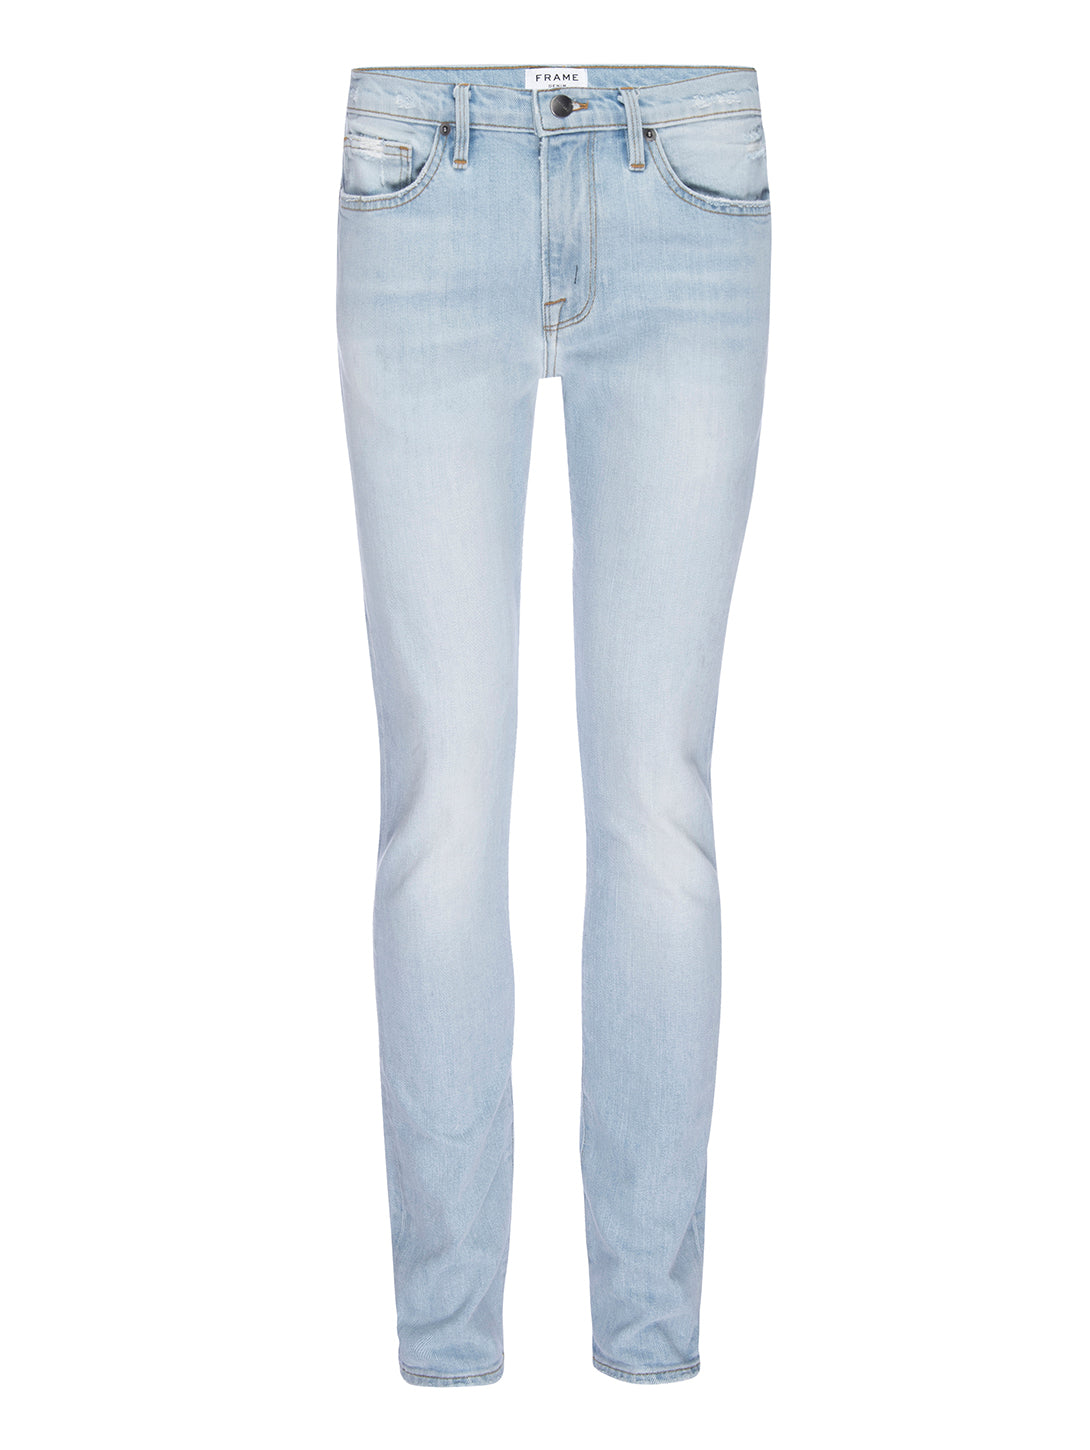 L'Homme Skinny Jean - Freewave-FRAME-Over the Rainbow